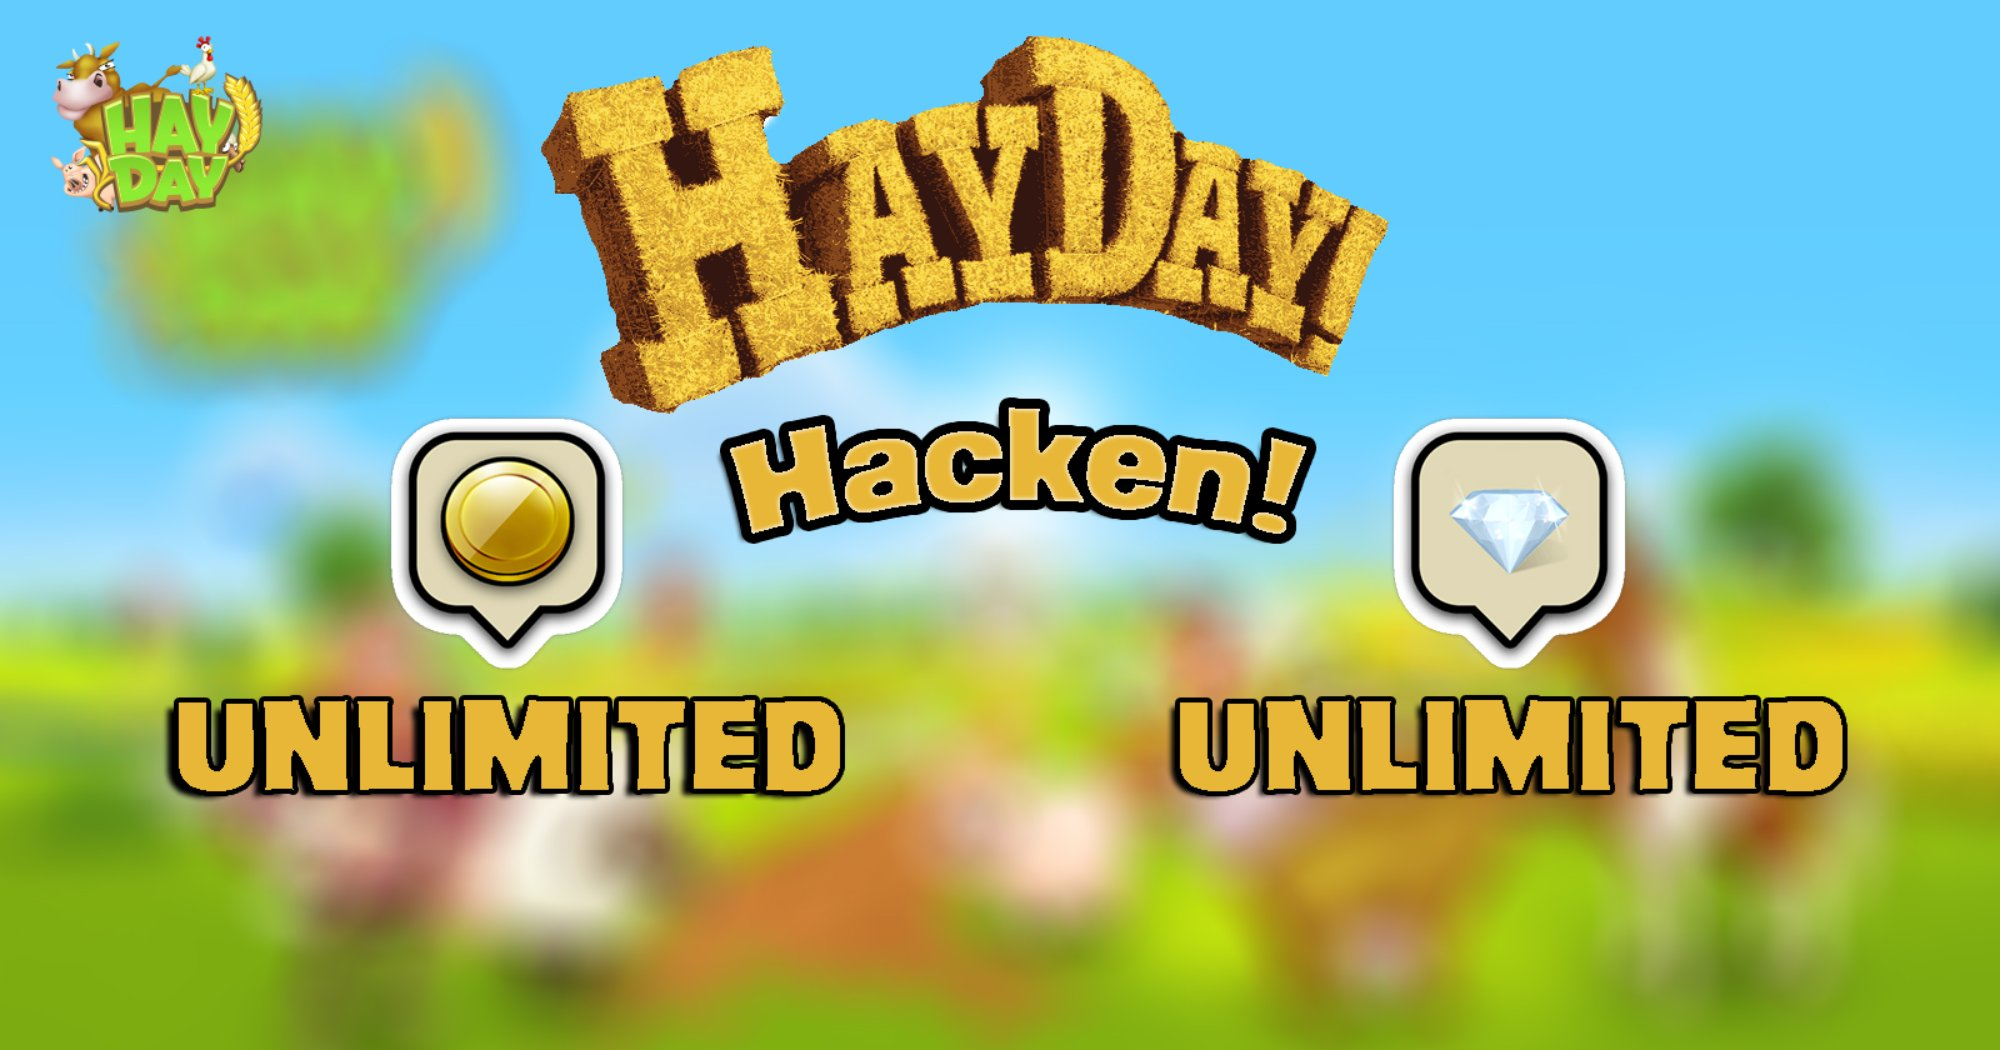 Start Hack tycoongamers.com/hay-day-hack-free-coins-and-diamonds for Obtain Coins and Diamond in Hay Day